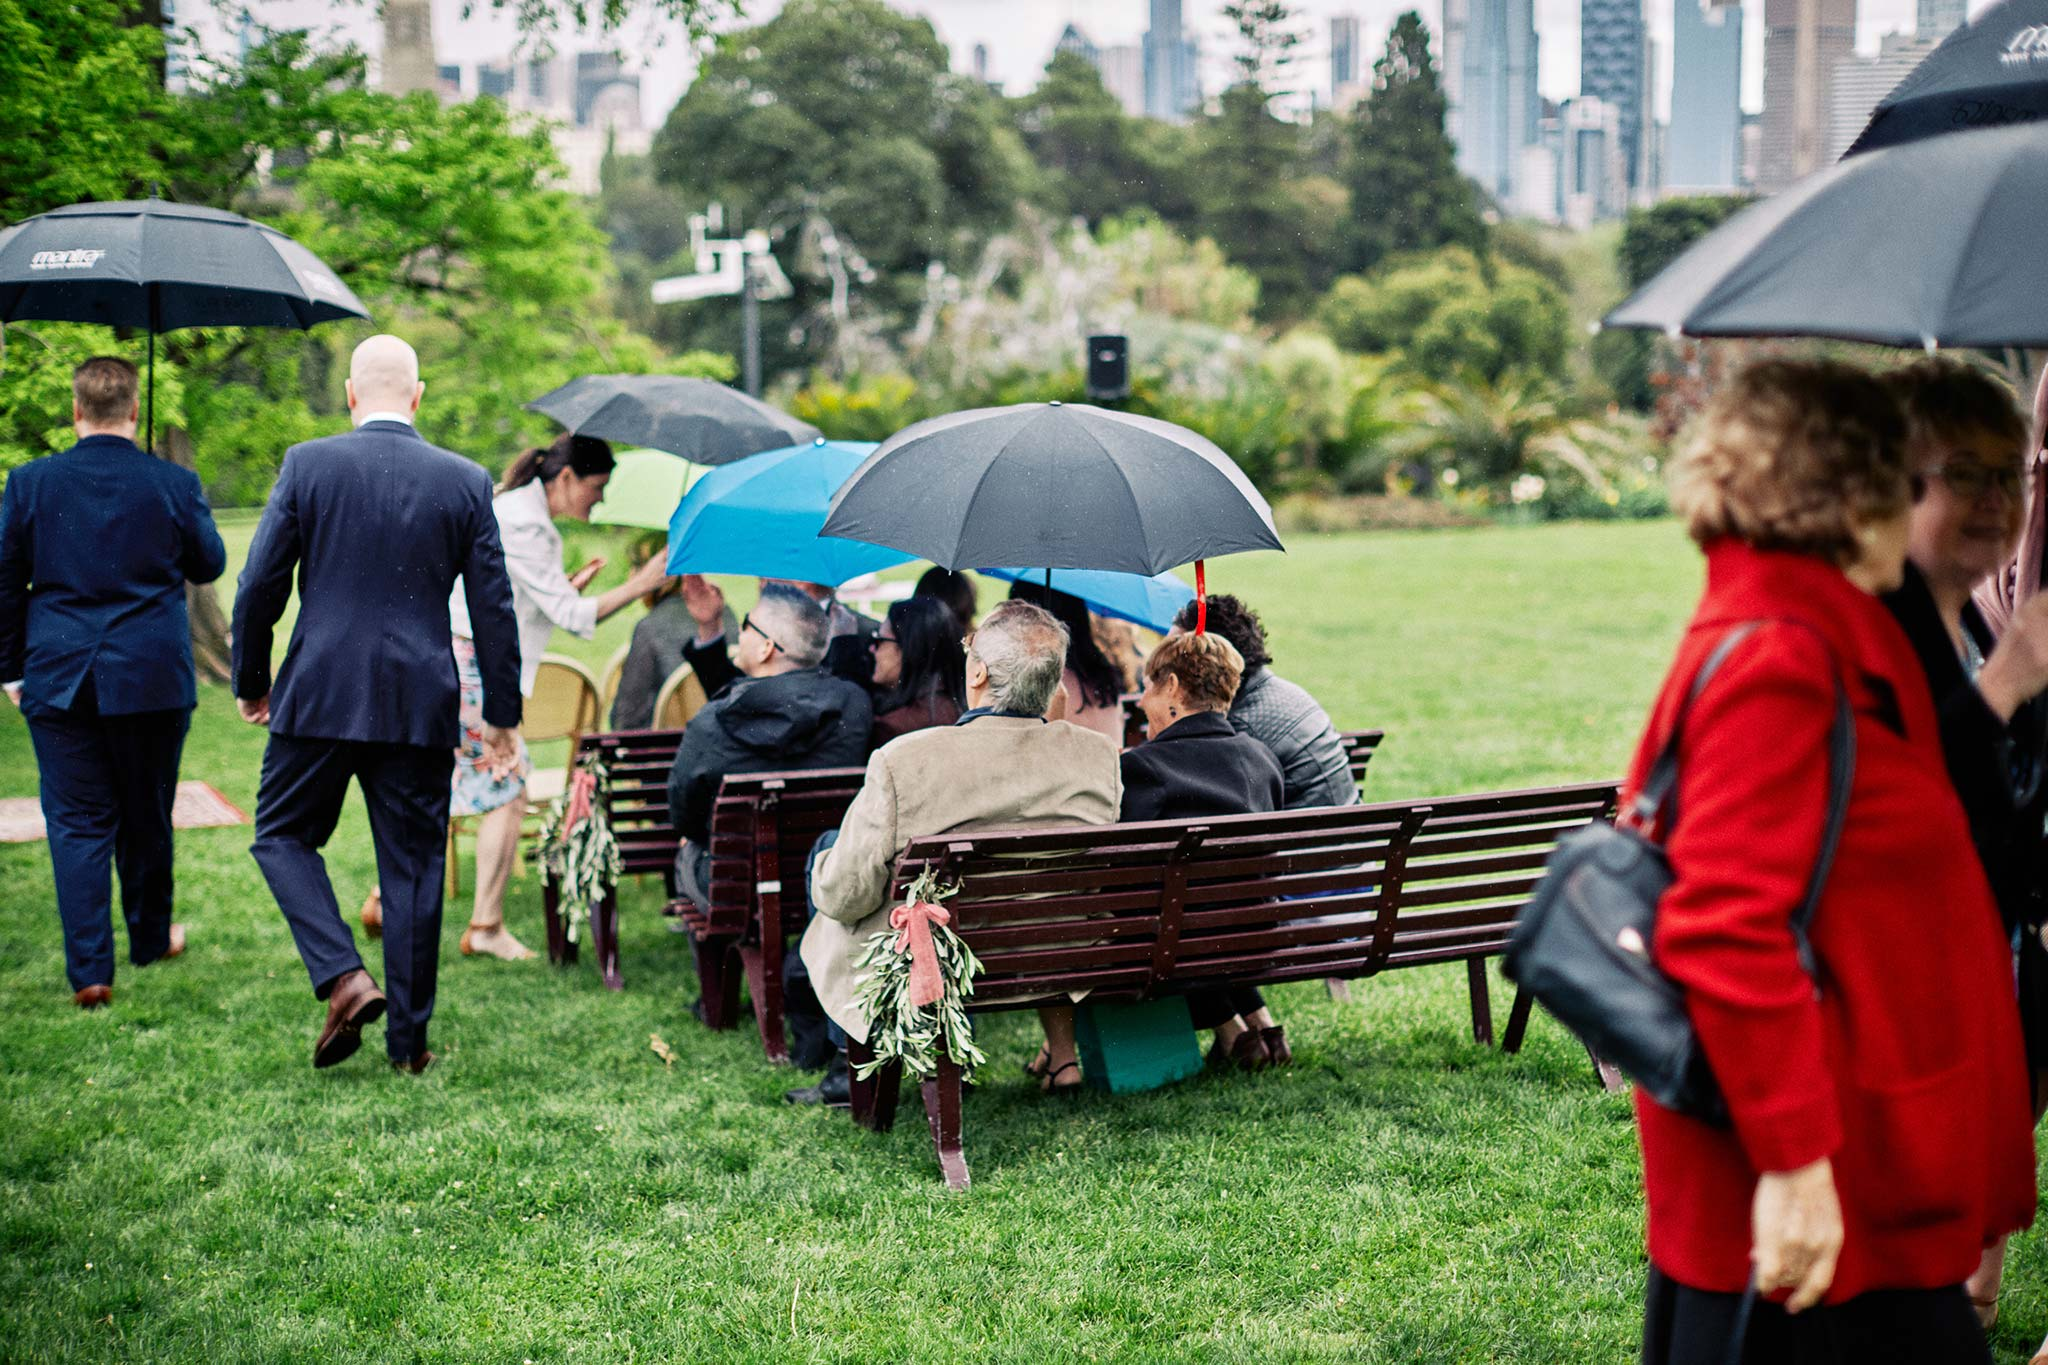 Melbourne Royal Botanical Garden Wedding Ceremony Set Up Umbrellas